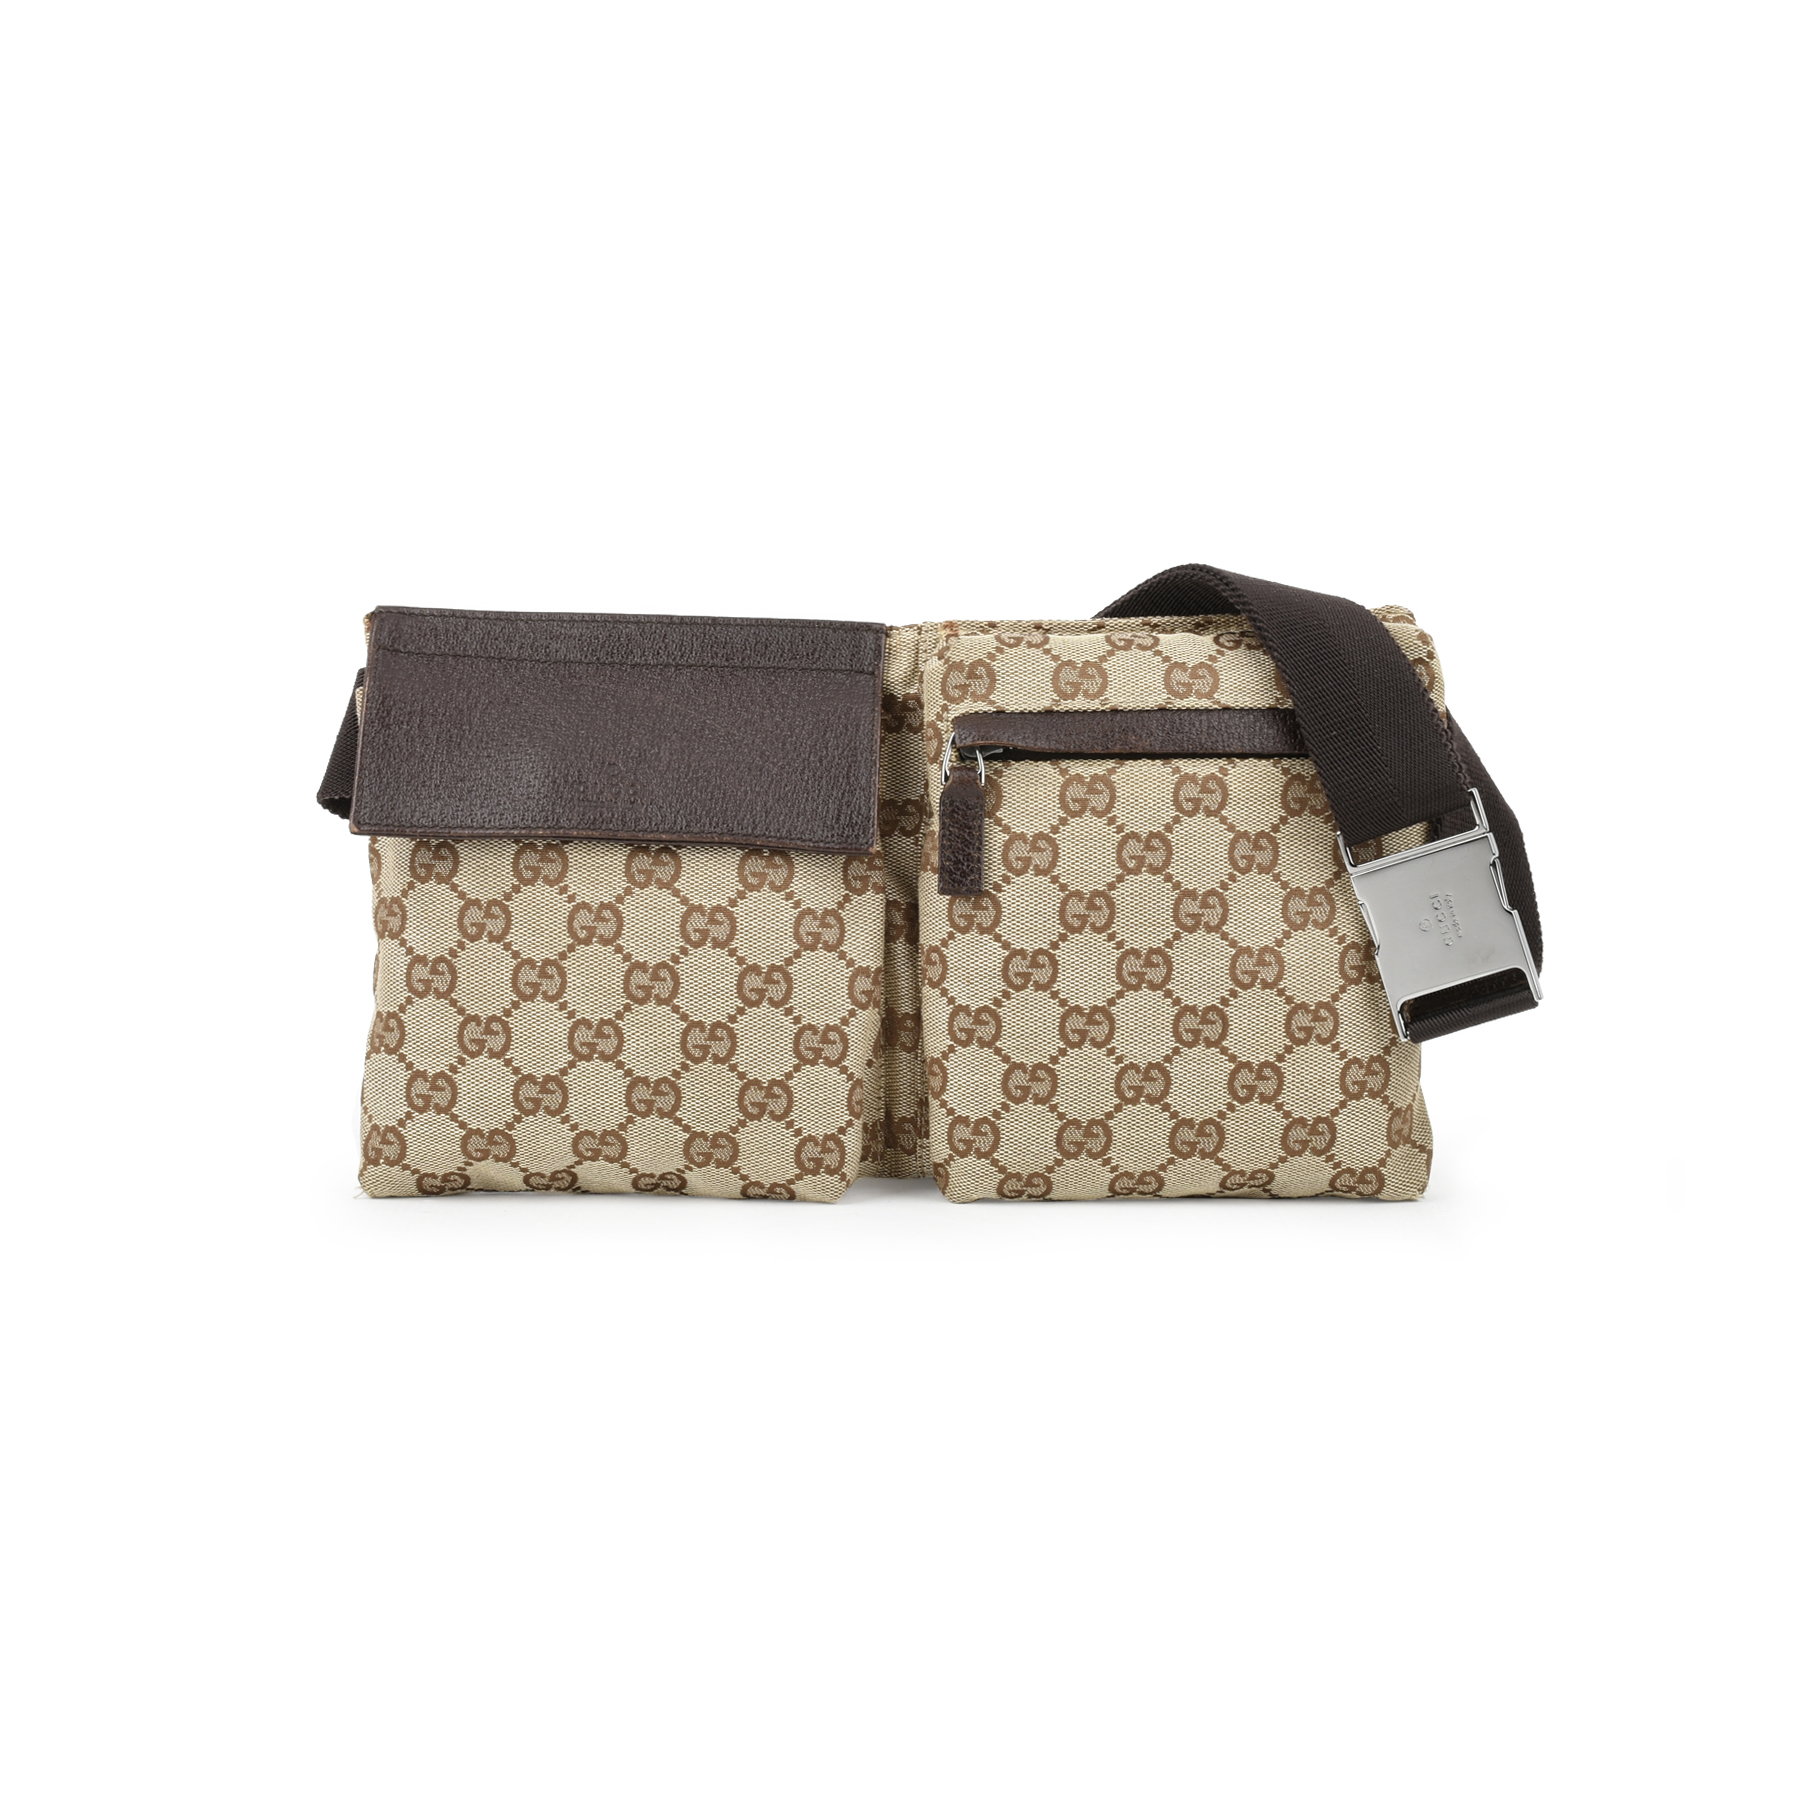 0bffb18bb2a4 Authentic Second Hand Gucci Monogram Belt Bag (PSS-436-00006)